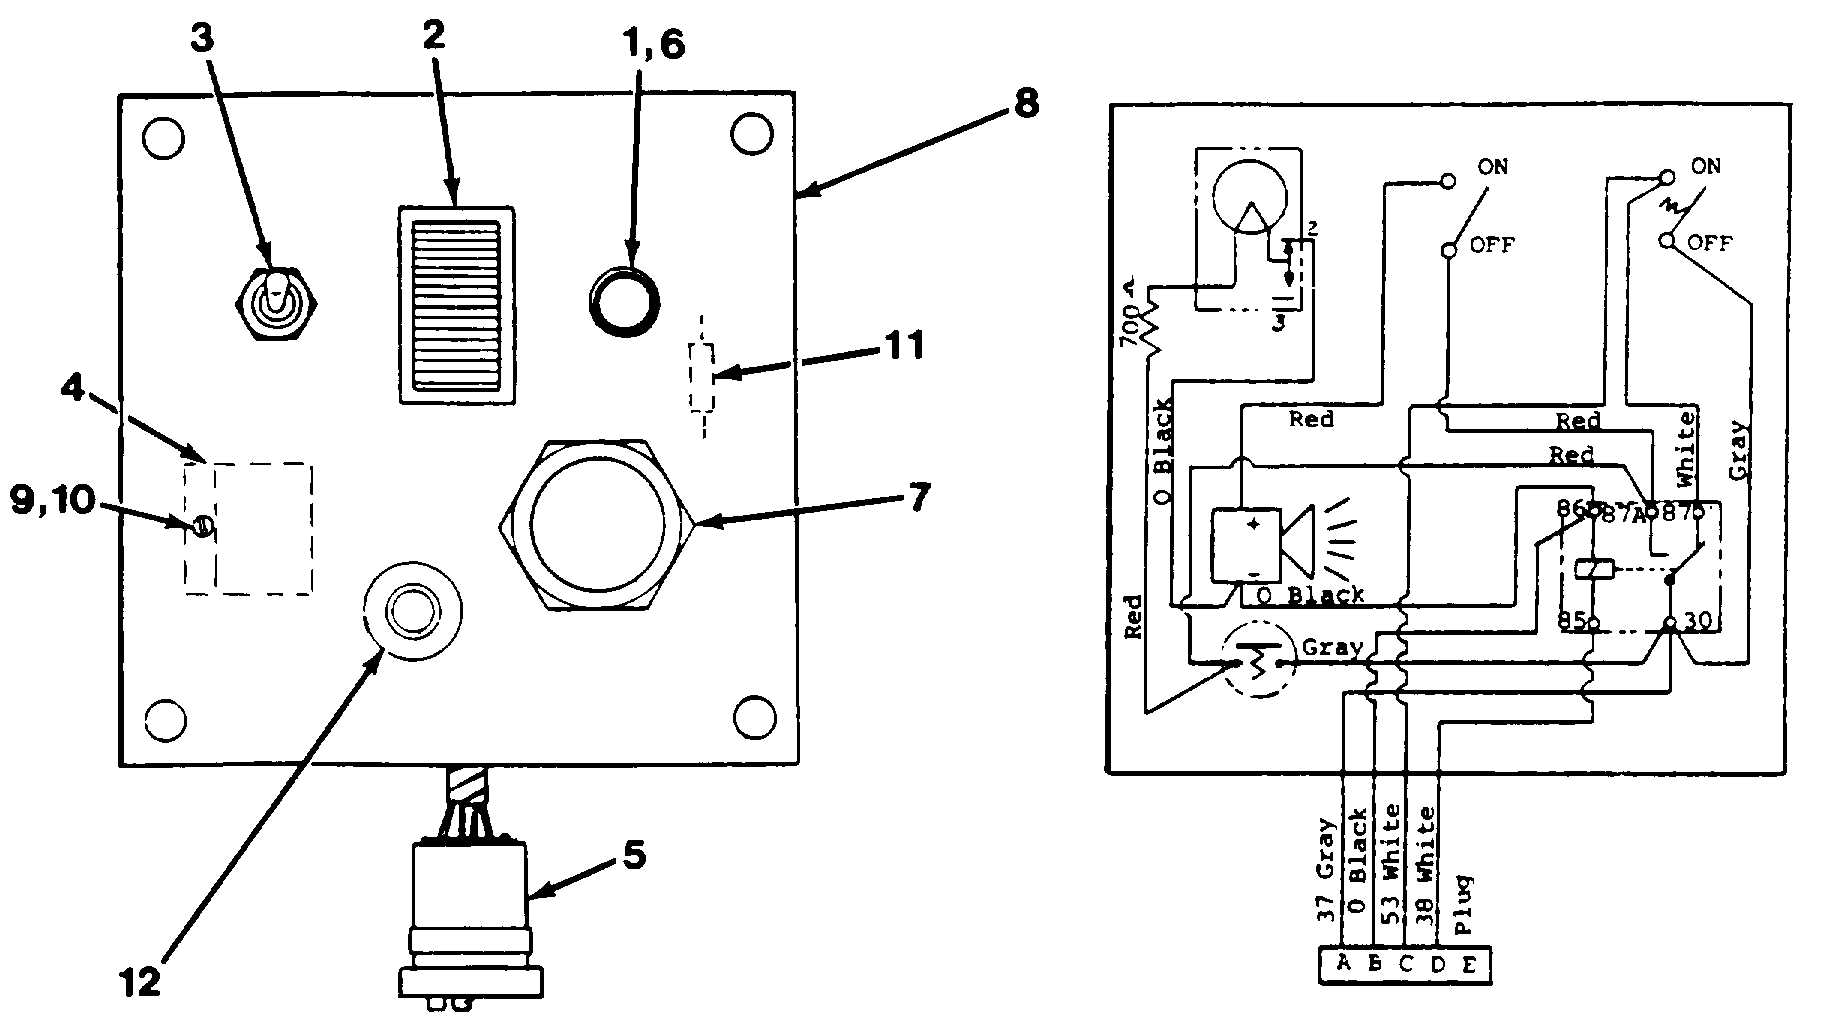 Figure 6-12. Anti-Two Block Control Panel